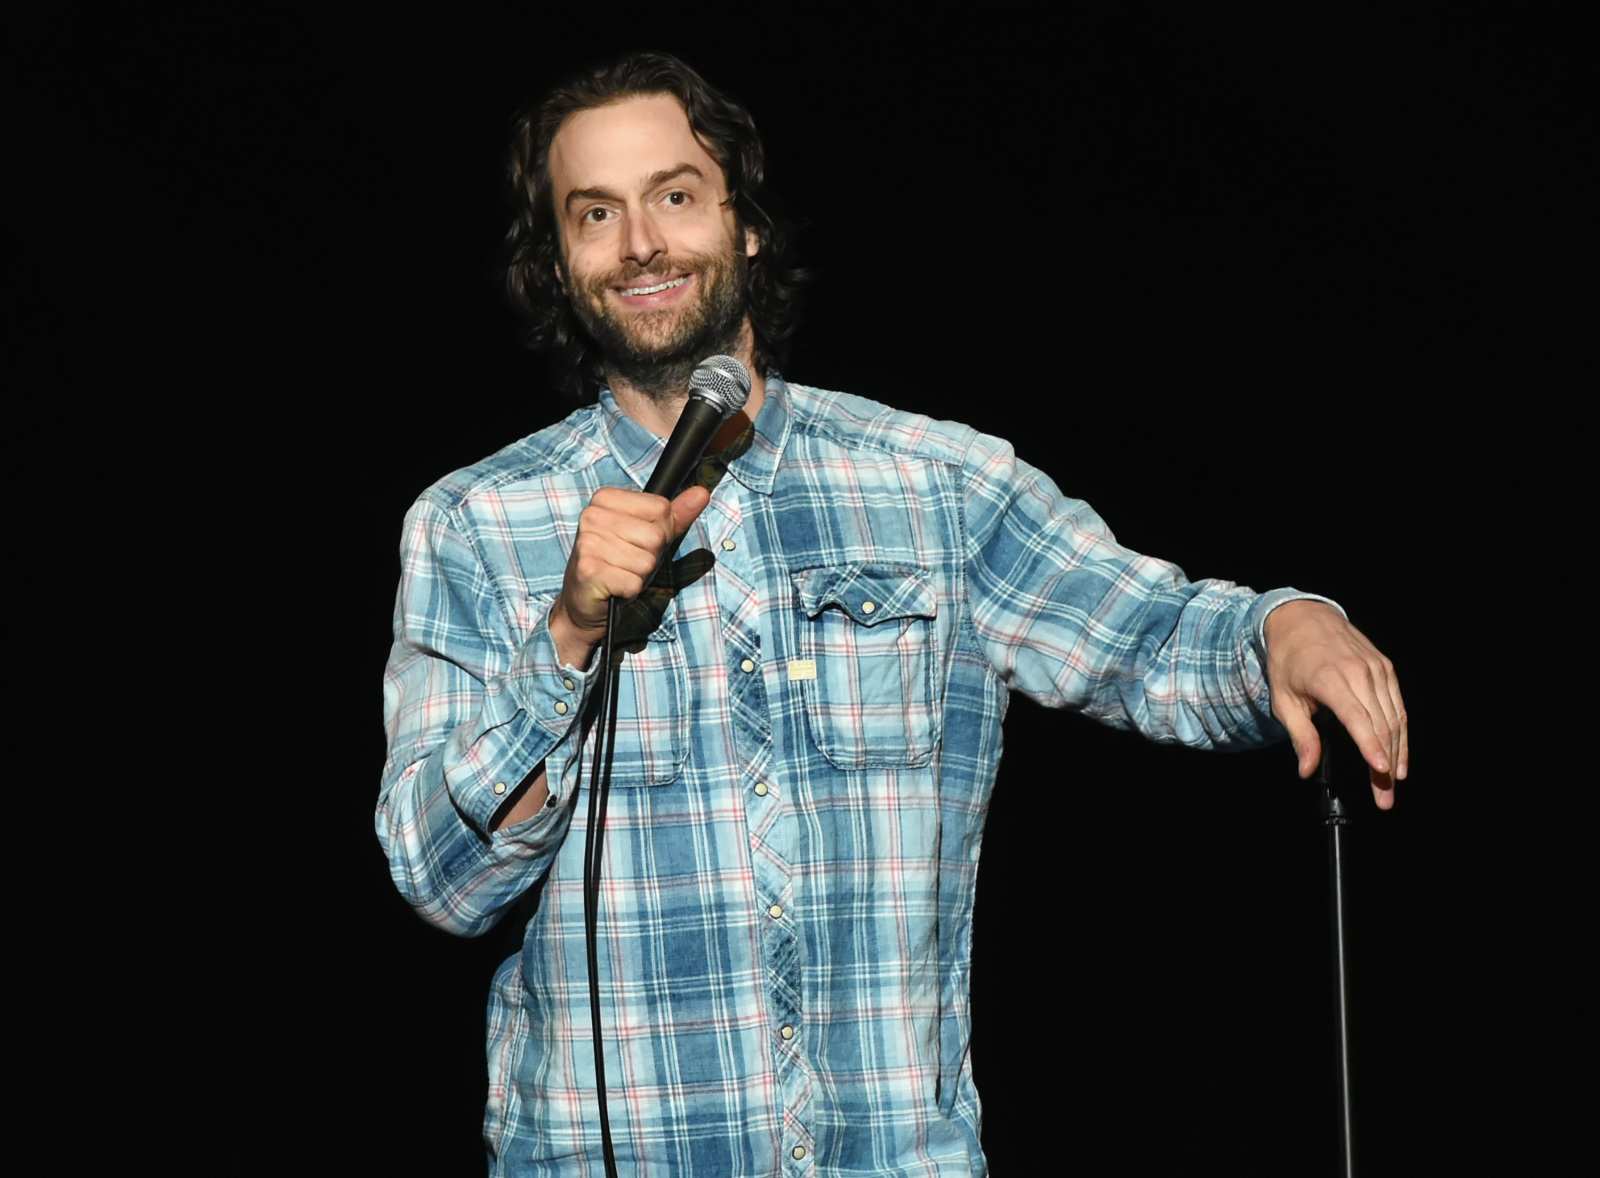 Watch Chris D'Elia's No Pain: Now streaming on Netflix